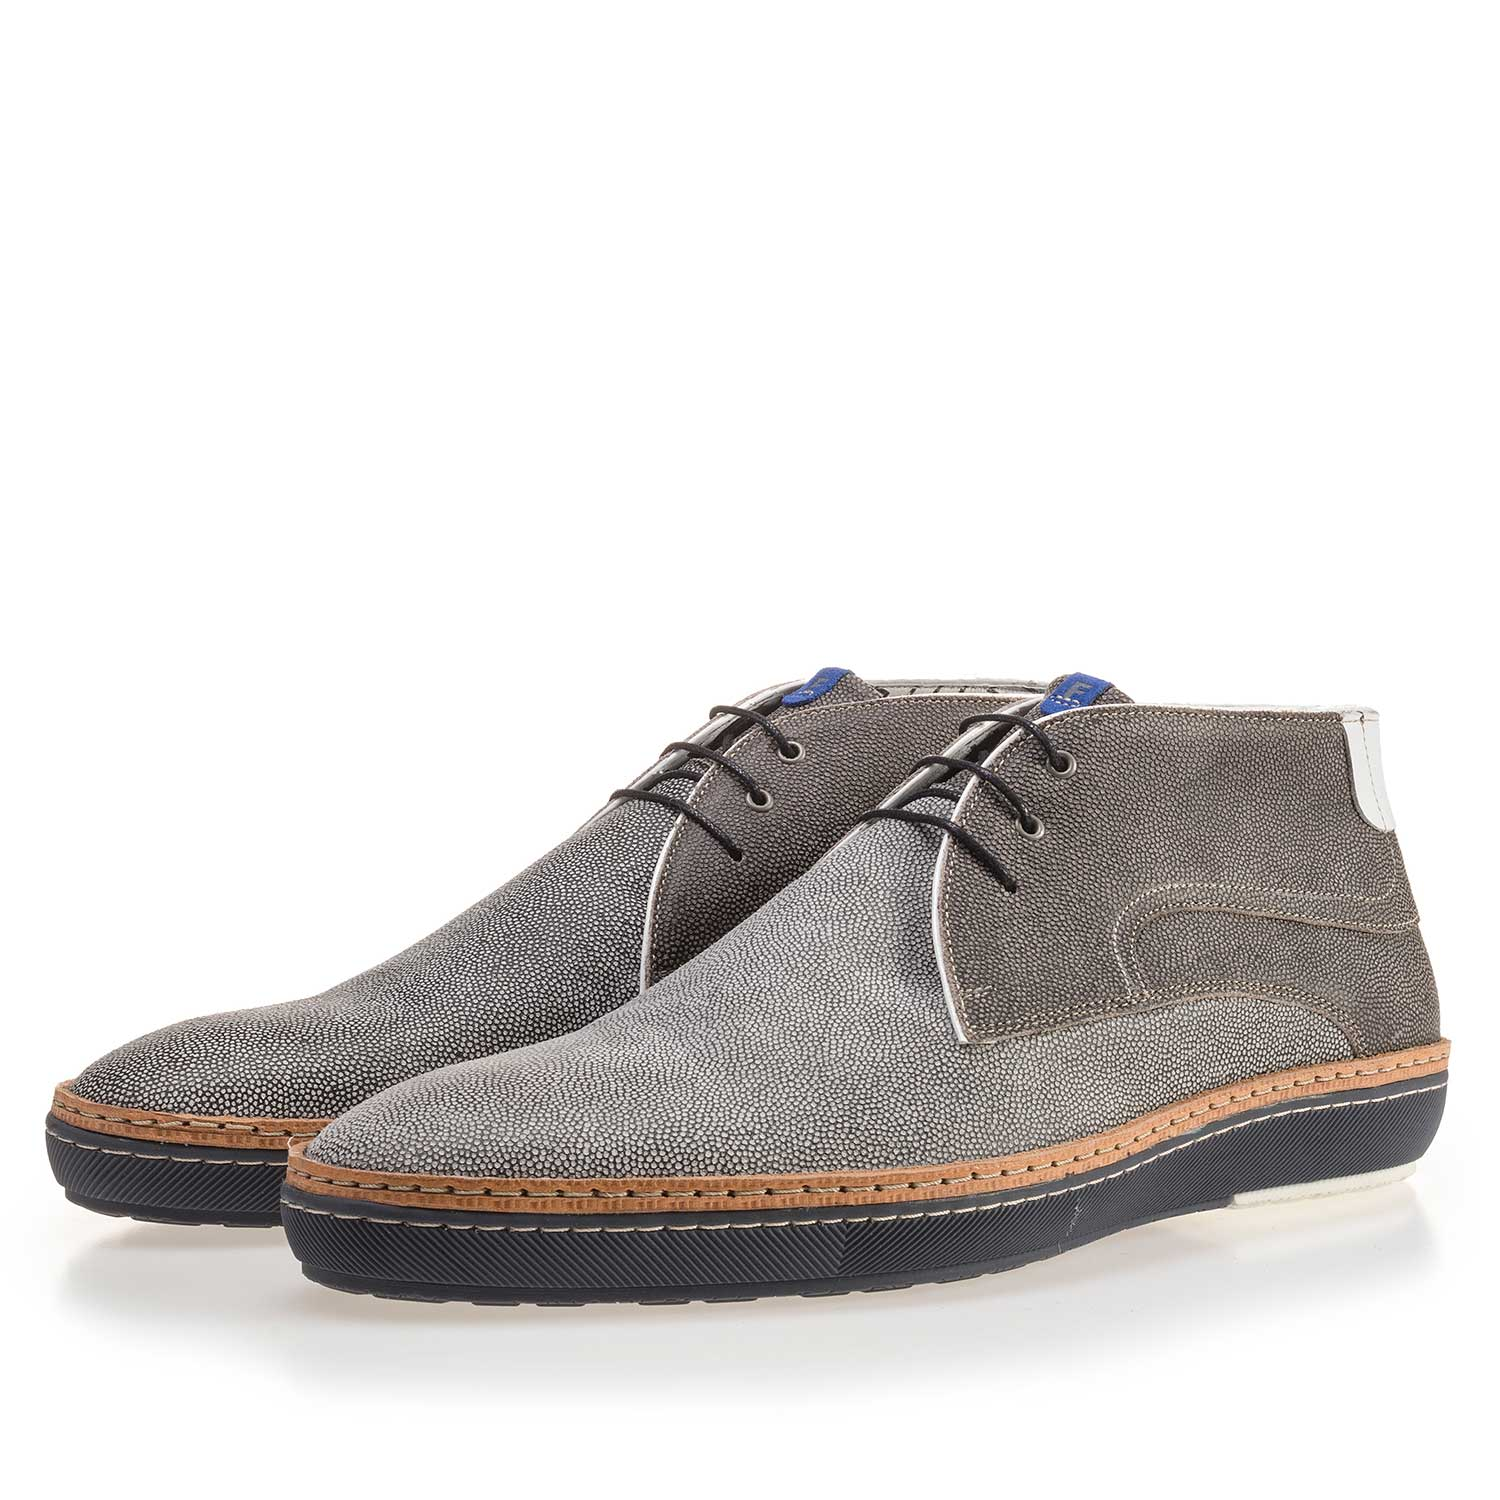 10015/01 - Grey suede leather lace boot with pattern